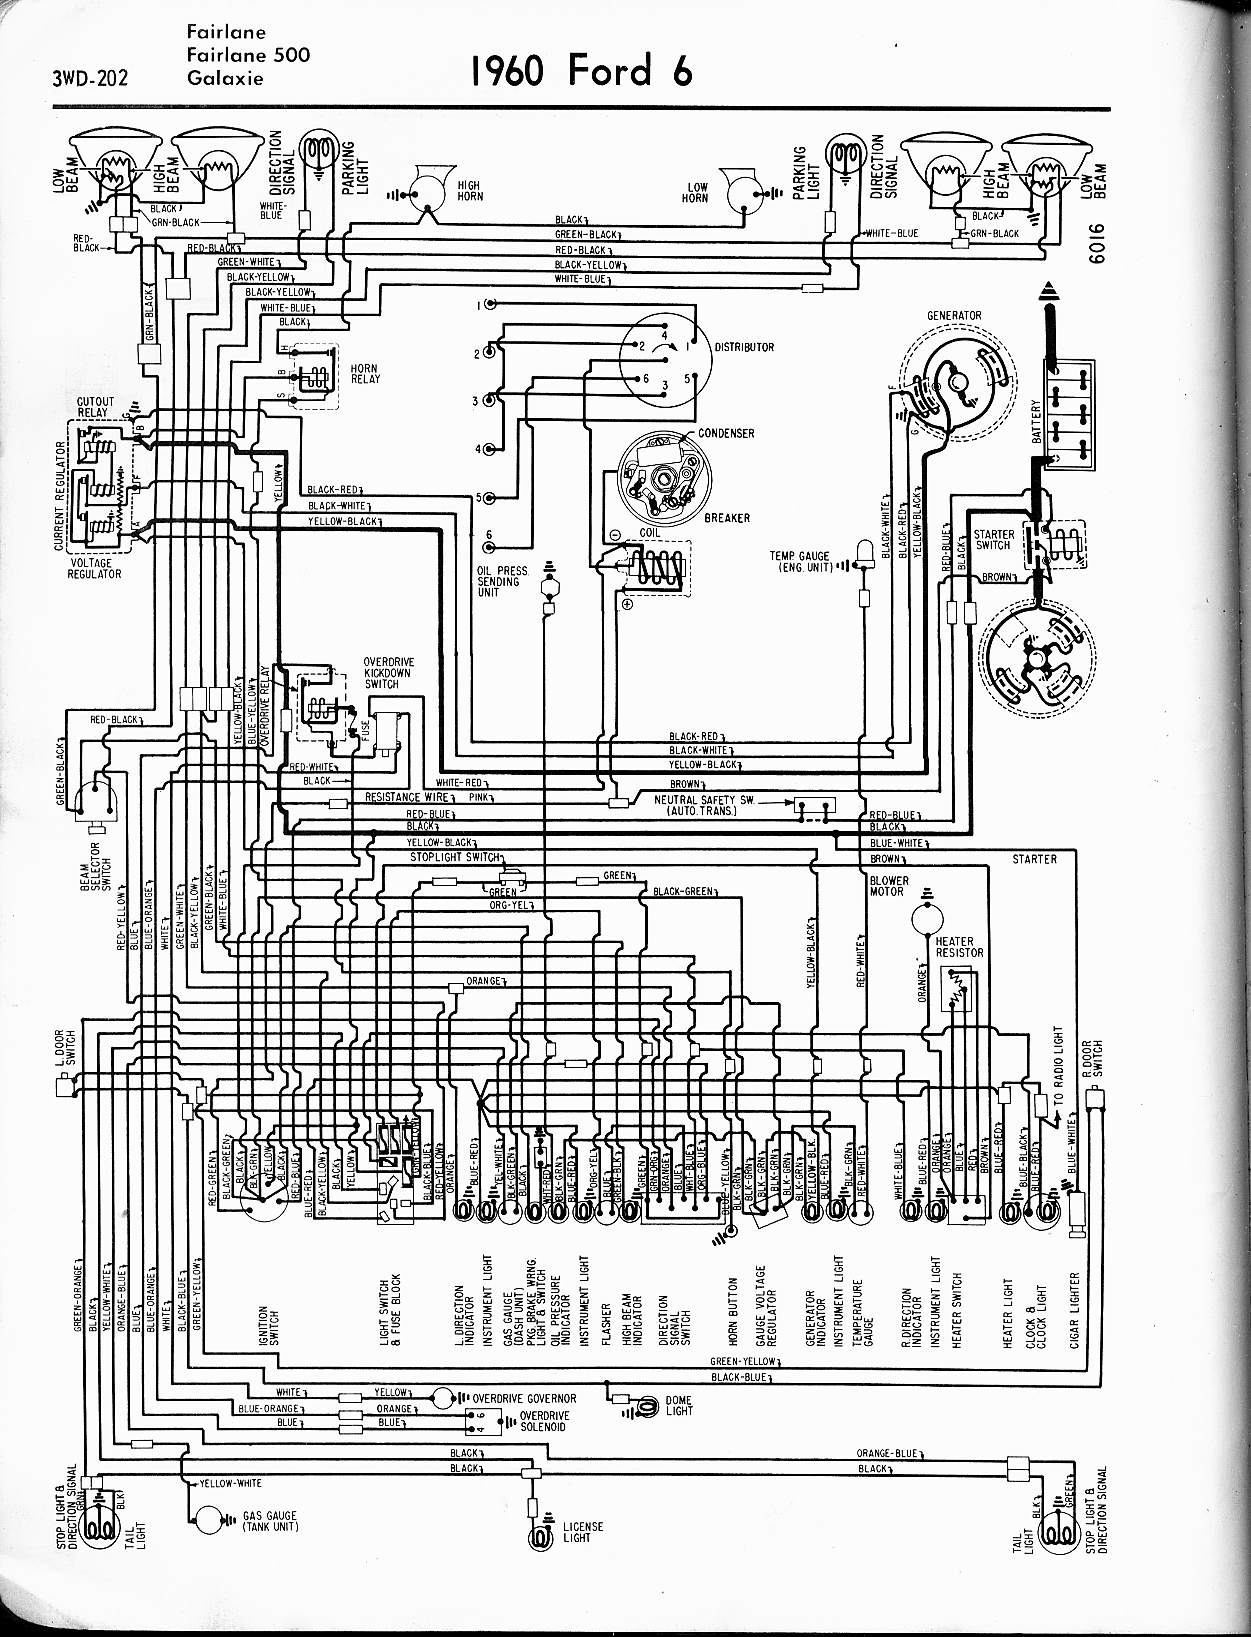 66 ford f100 wiring diagram electrical diagram schematics rh zavoral genealogy com 2003 F250 Wiring Diagram 1974 ford f250 wiring diagram